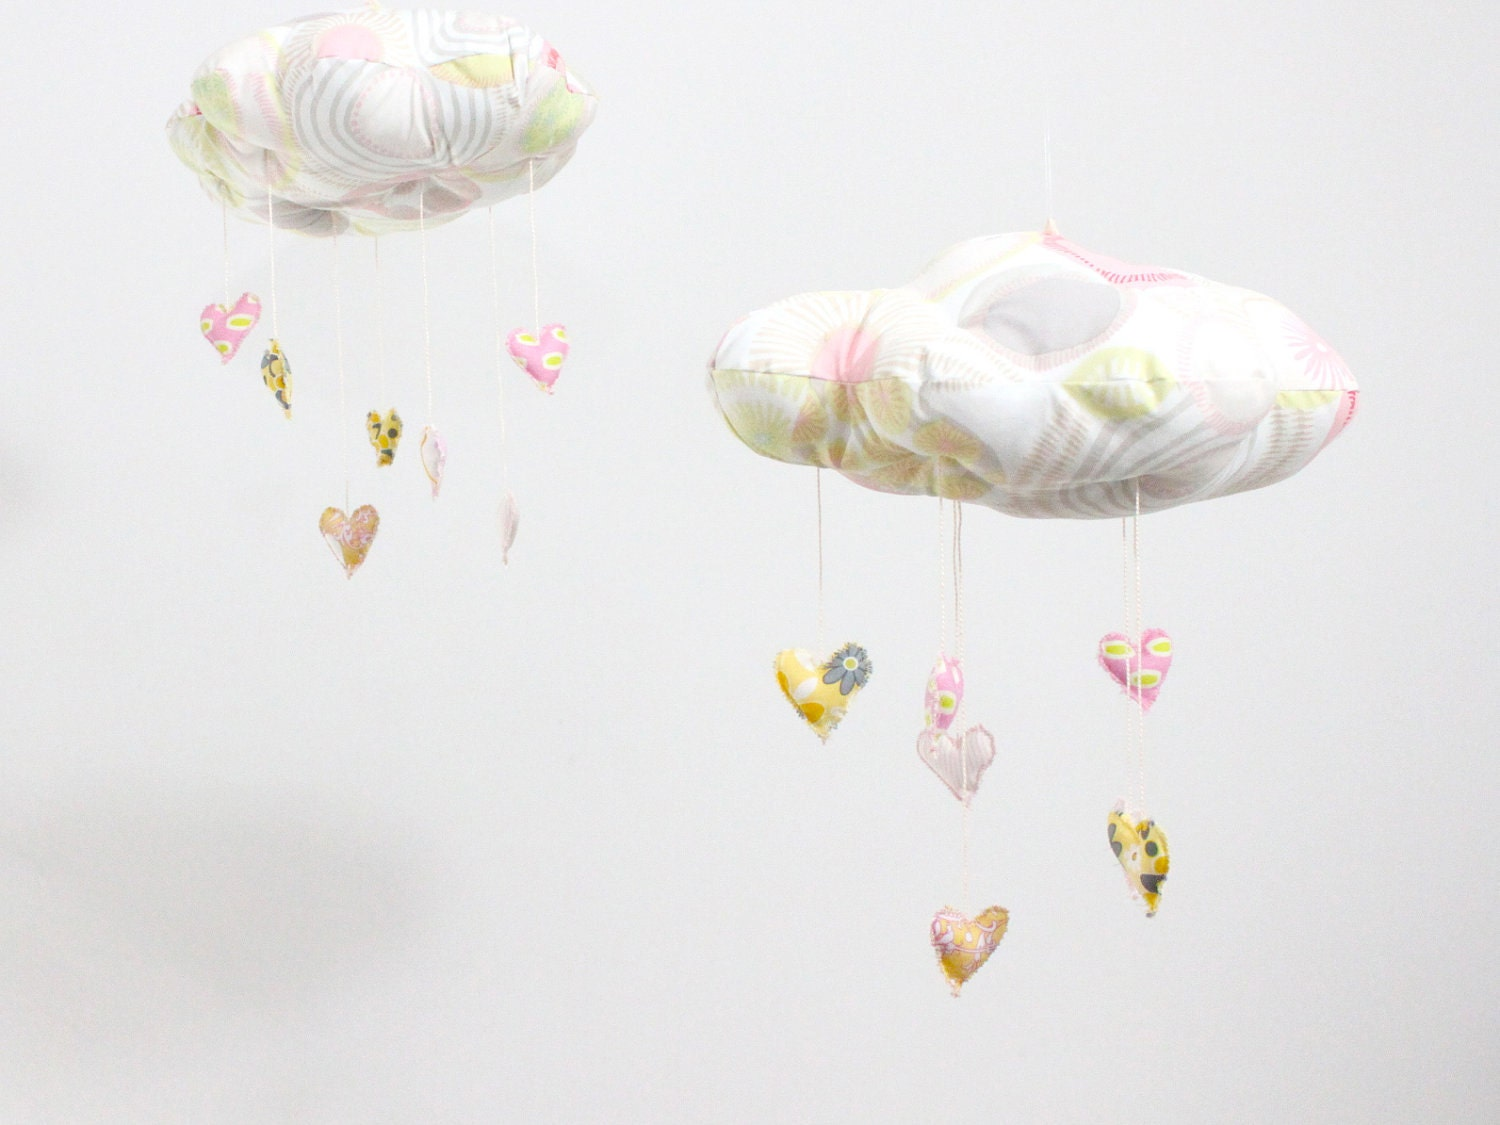 My Sweet Heart Cloud Mobile - LAST ONE in limited edition fabric sculpture decoration for nursery in pink, grey,white and lemon yellow